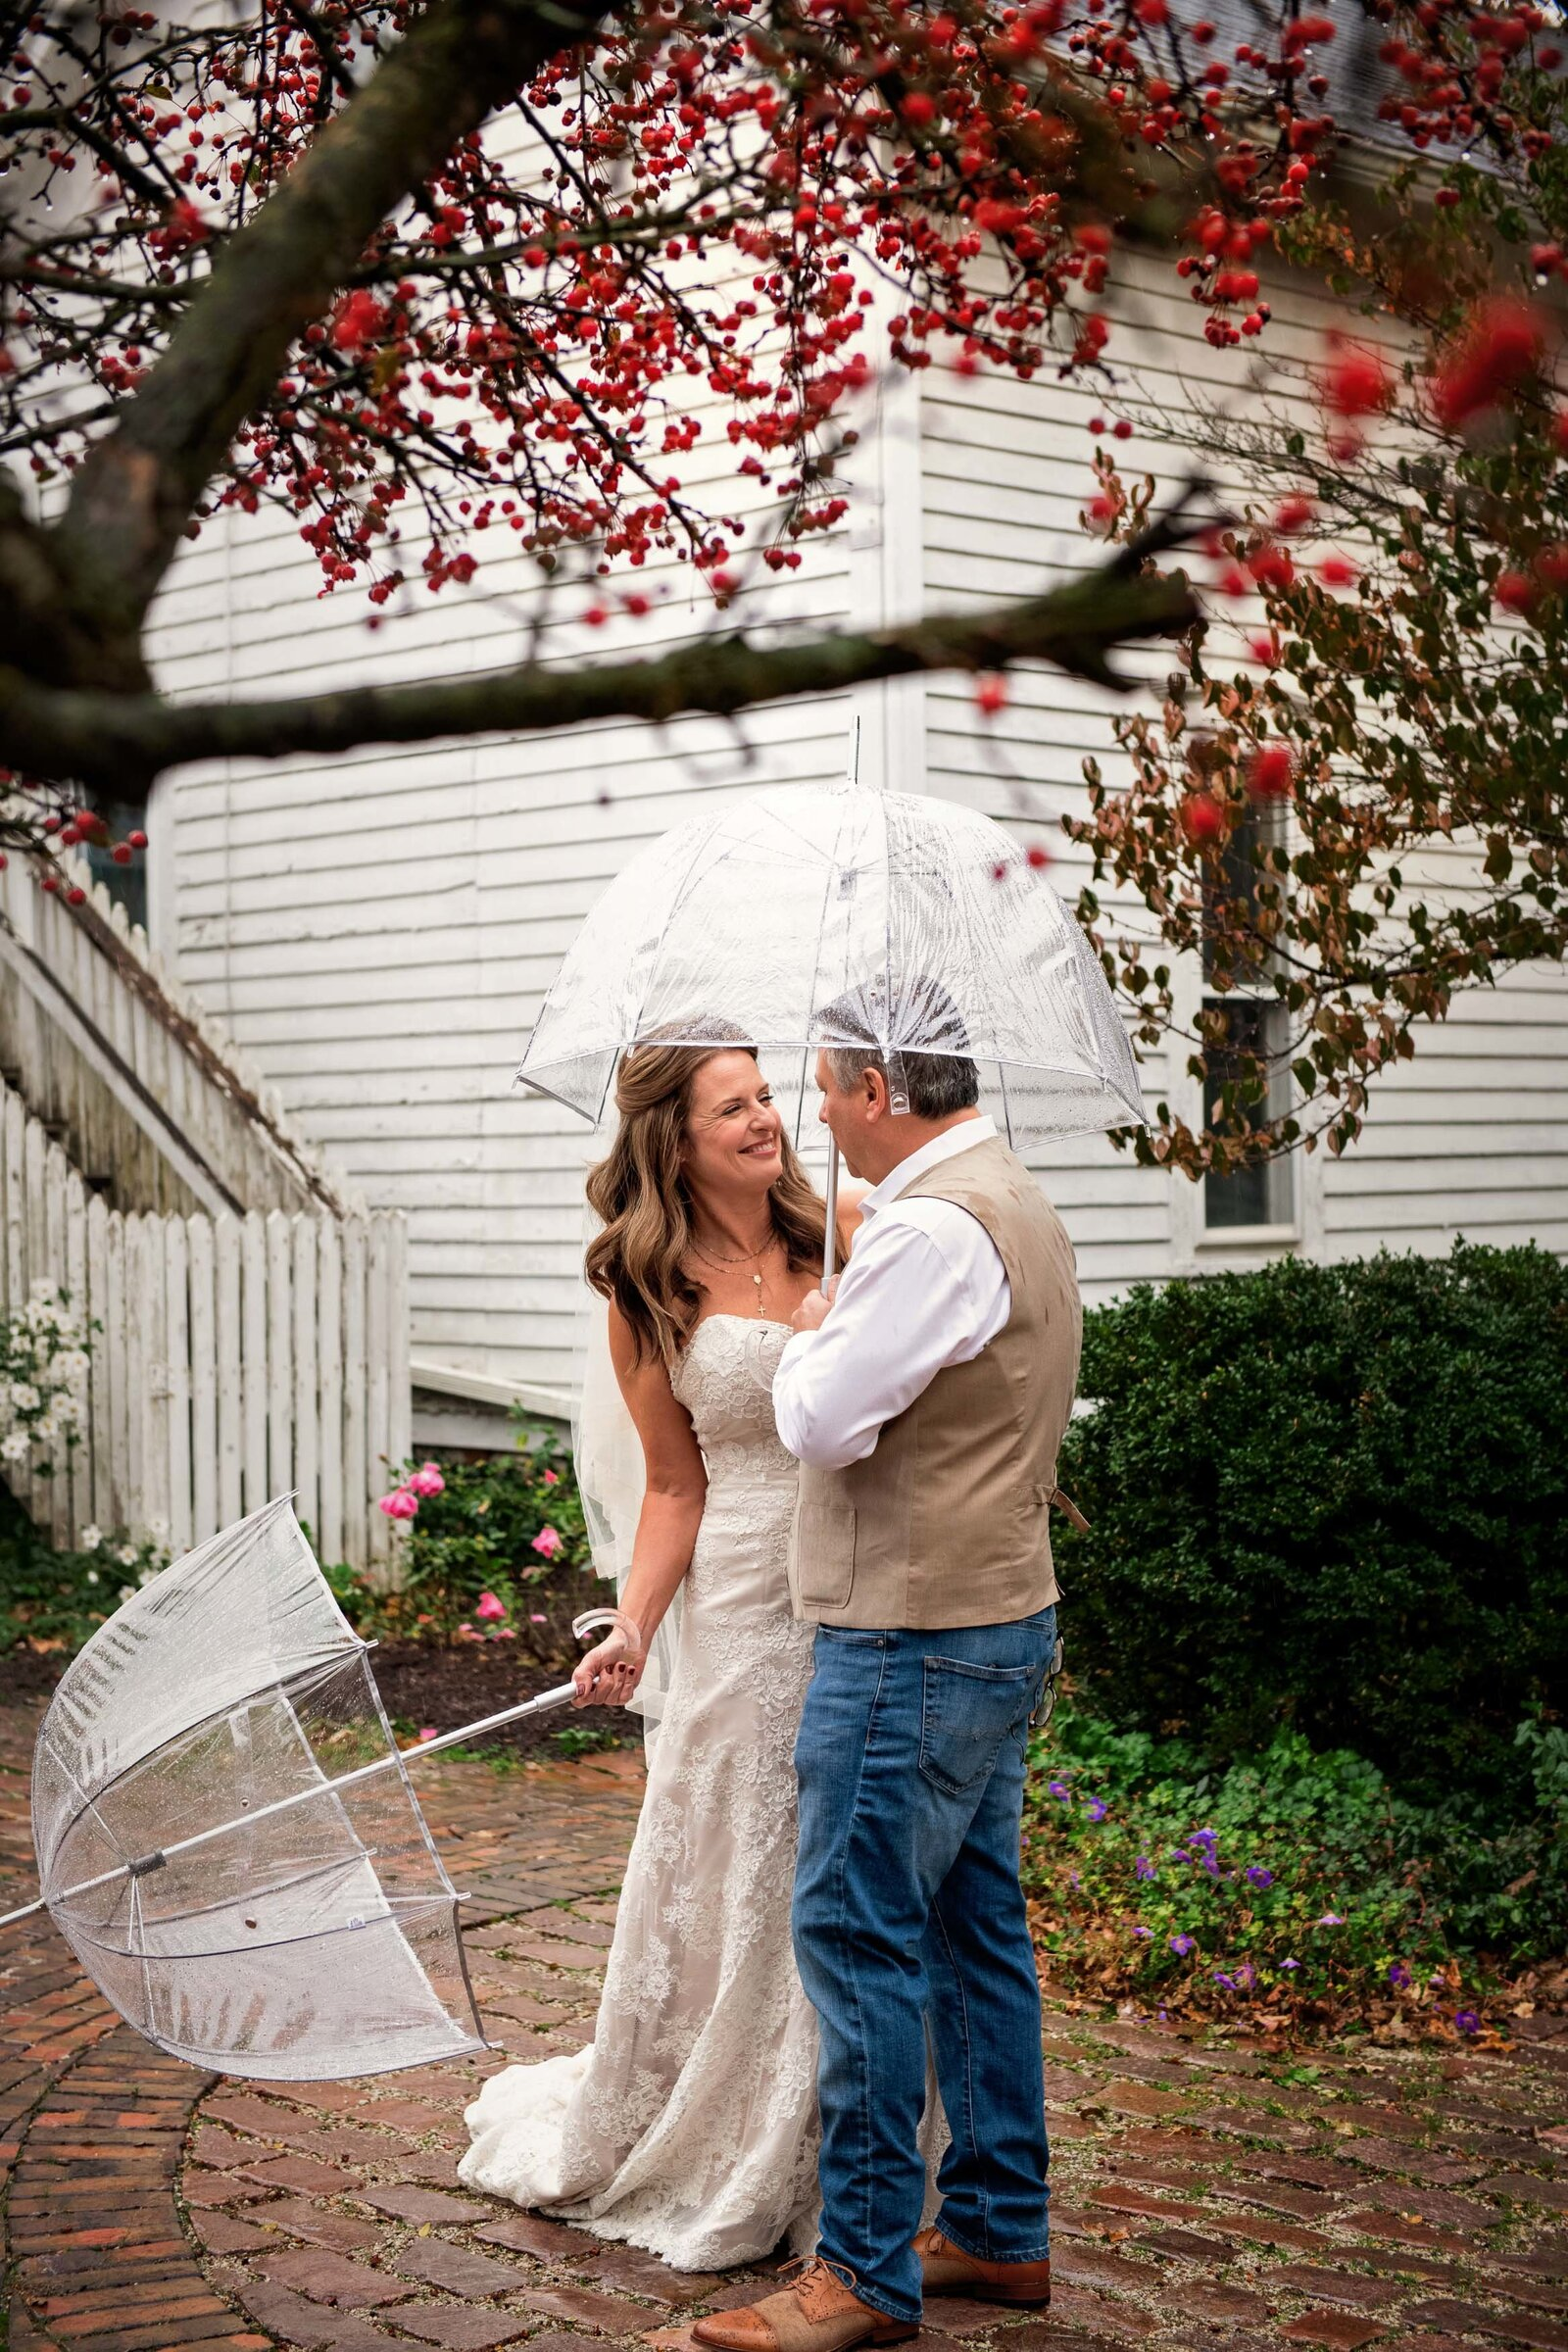 wedding-wayne-first-look-rain-umbrellas